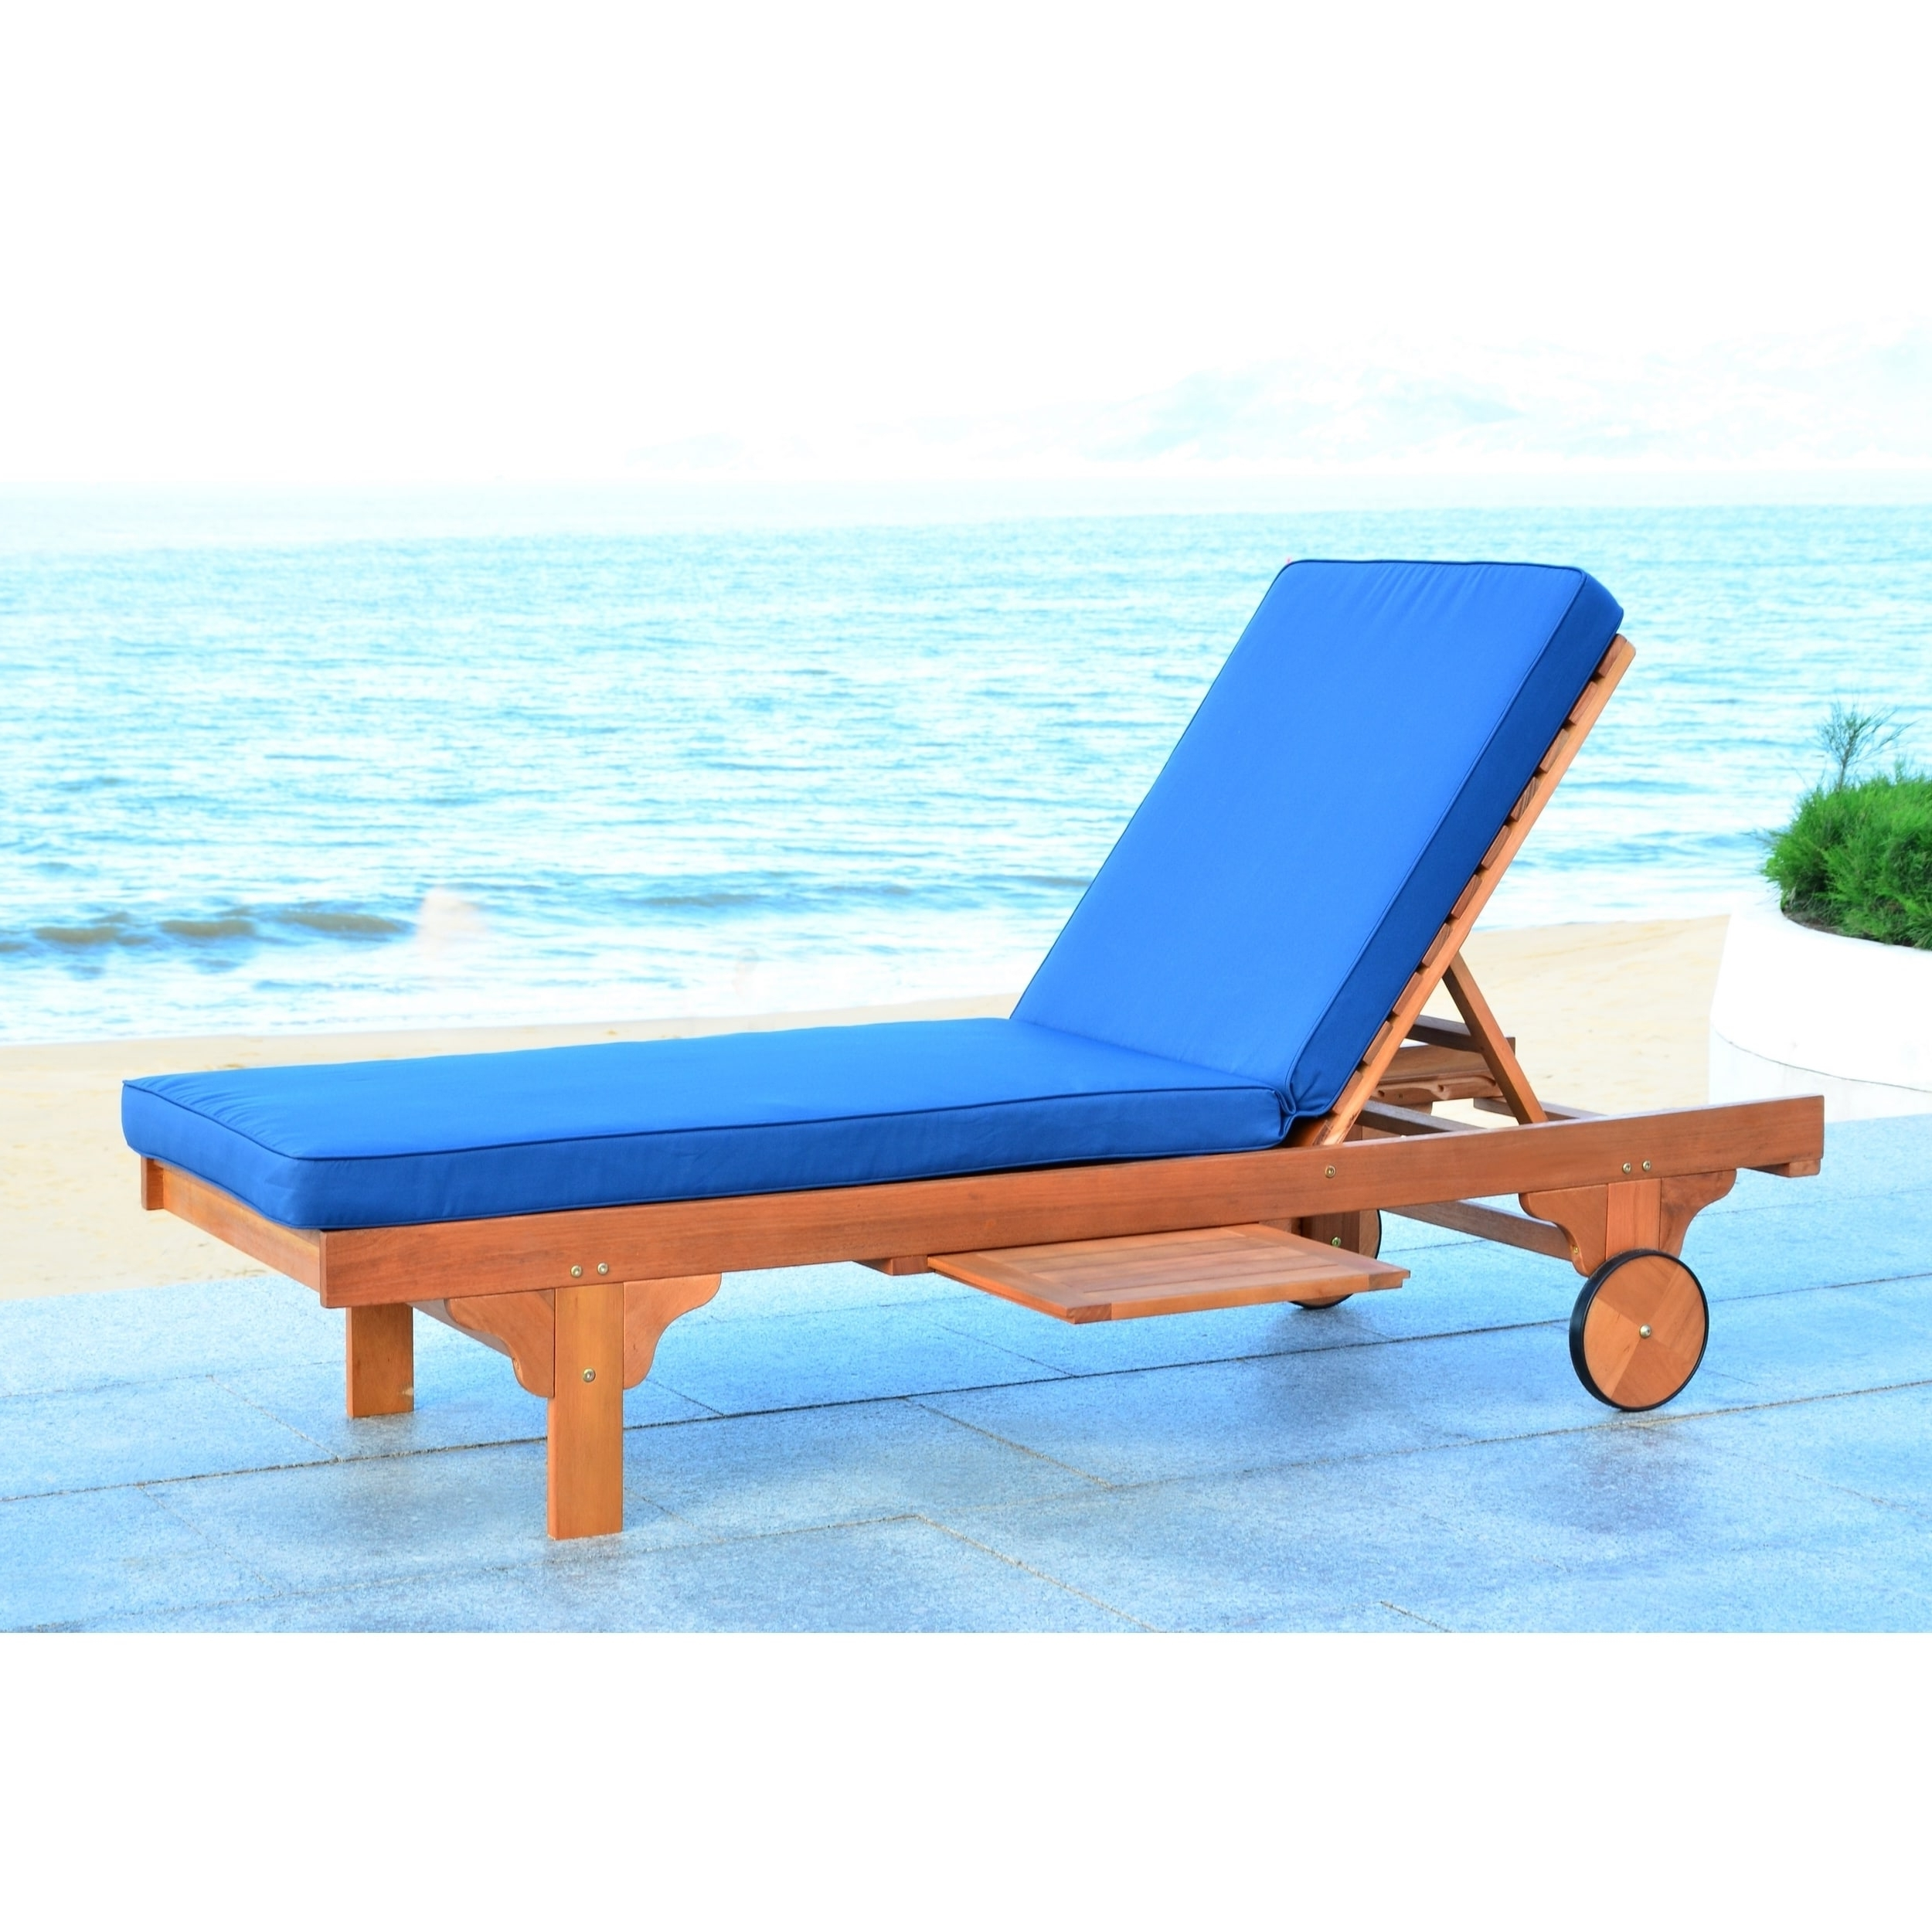 Widely Used Safavieh Outdoor Living Newport Brown/ Navy Adjustable Chaise With Regard To Newport Chaise Lounge Chairs (View 8 of 15)